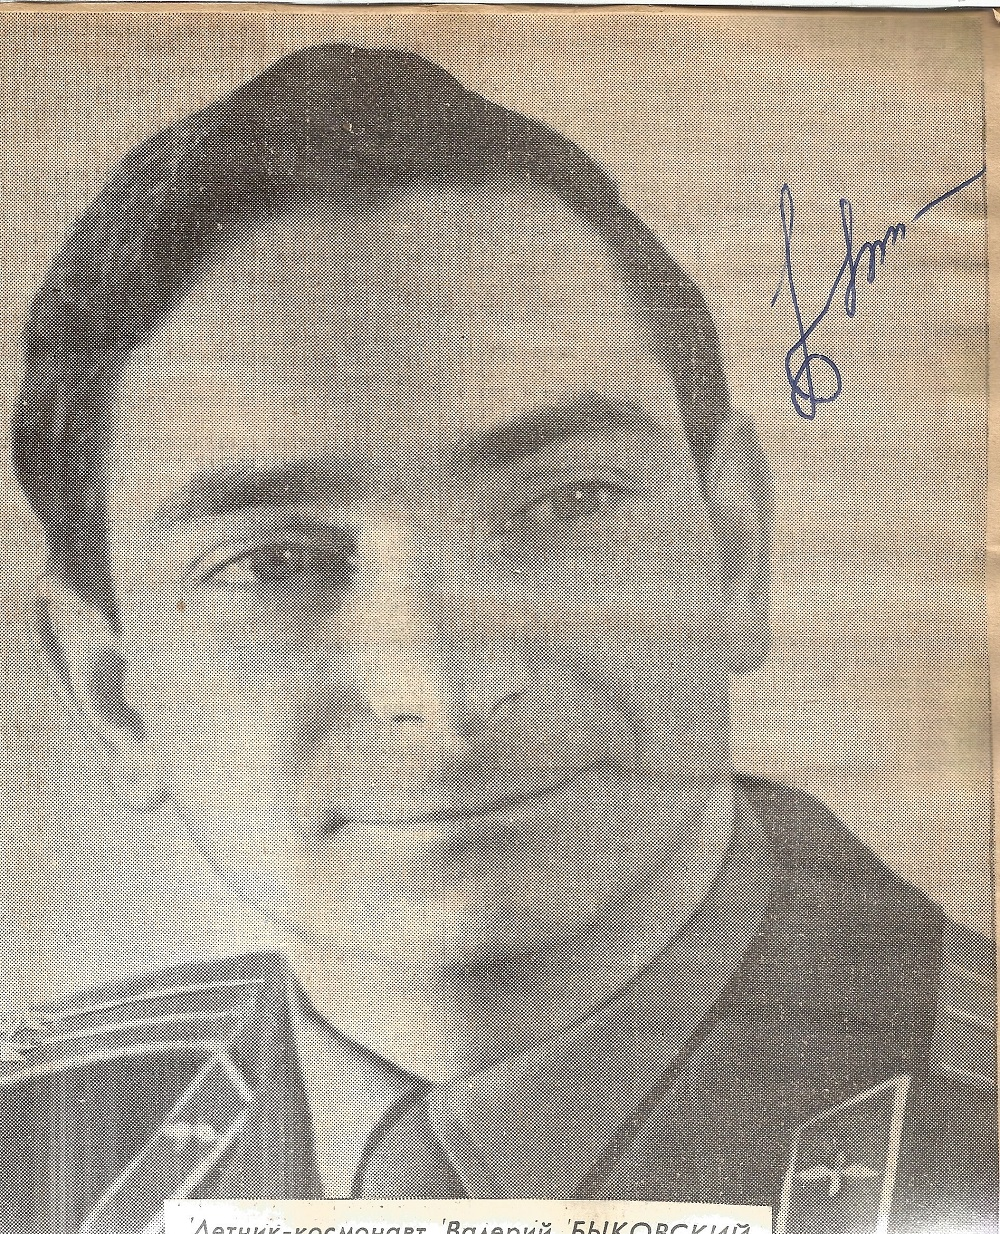 1950/60s Russian Cosmonauts multiple signed hard backed scrapbook compiled by a worker at Baikonur - Image 15 of 22